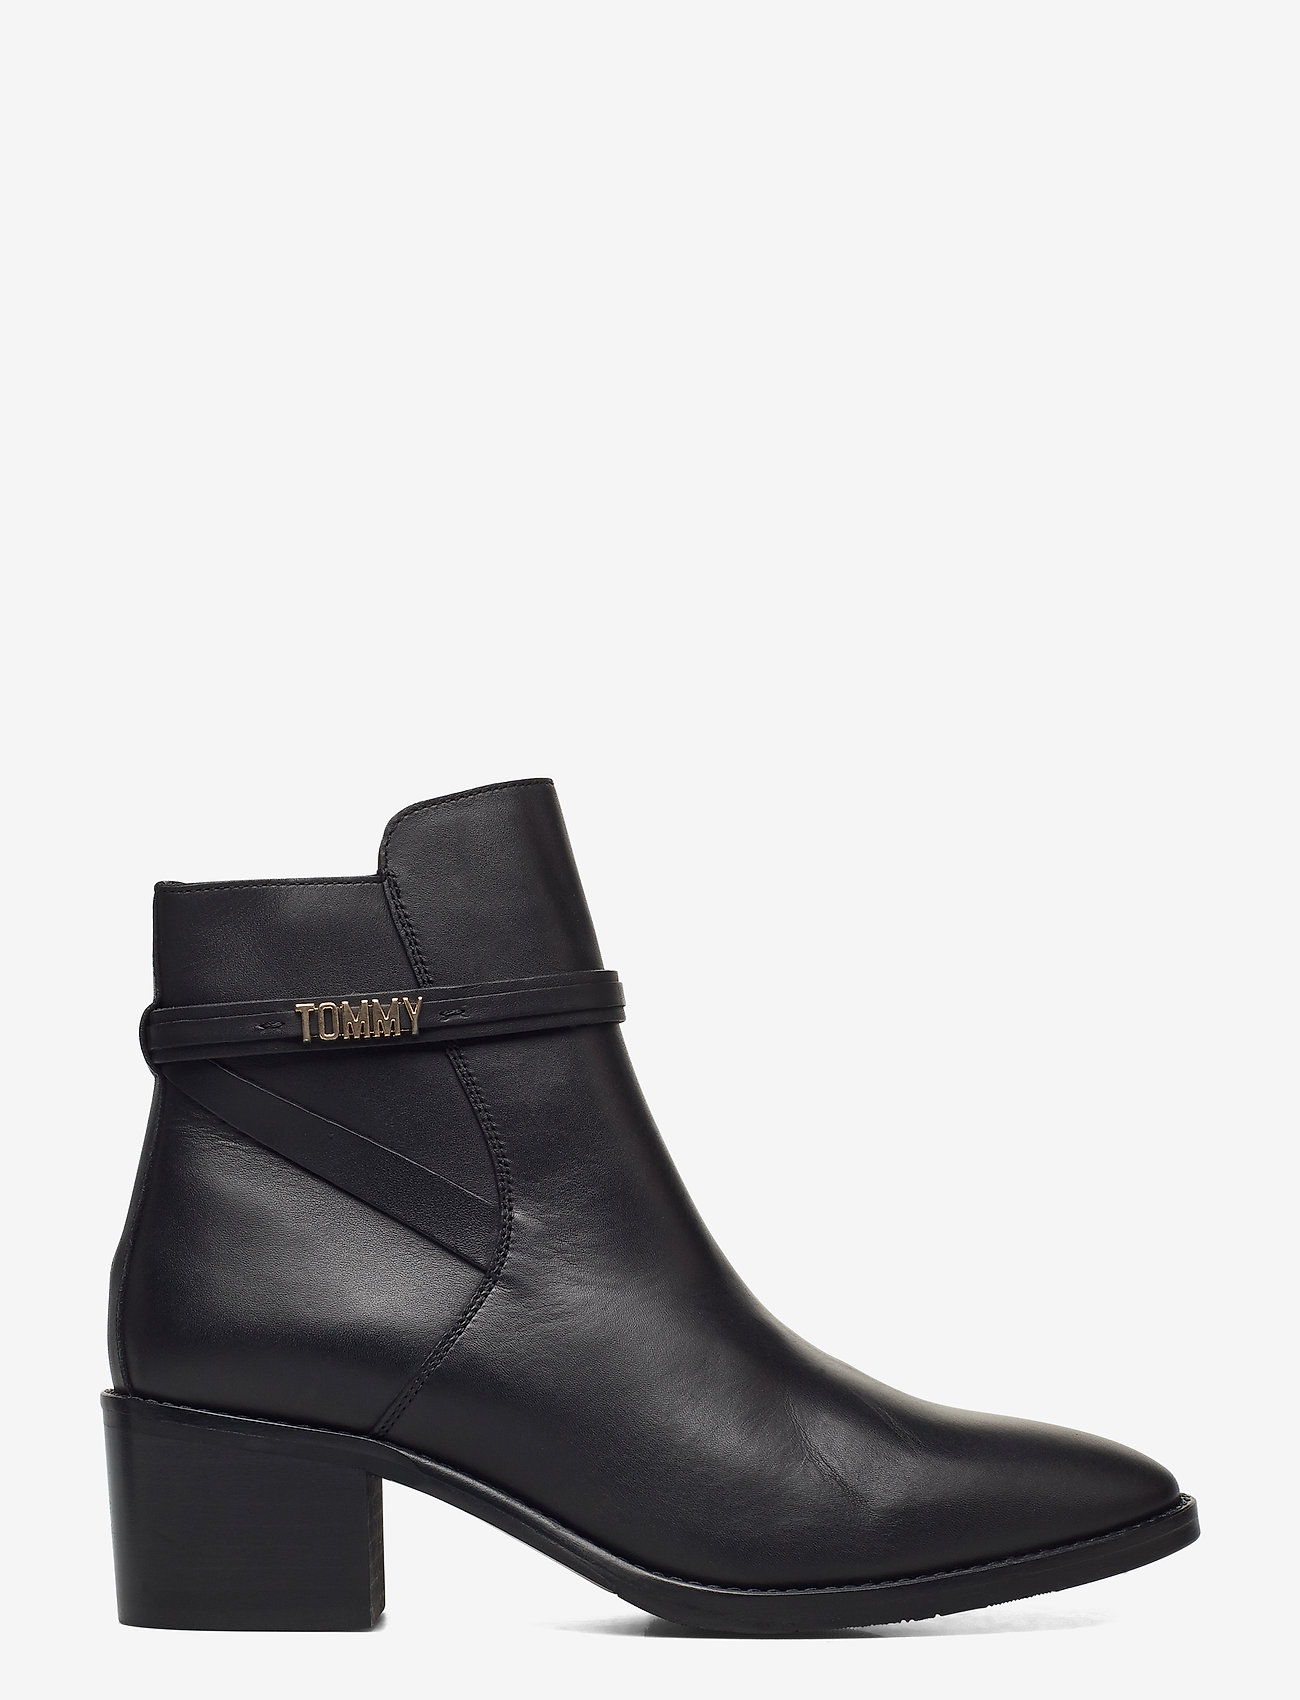 Tommy Hilfiger - BLOCK BRANDING LEATHER MID BOOT - heeled ankle boots - black - 1